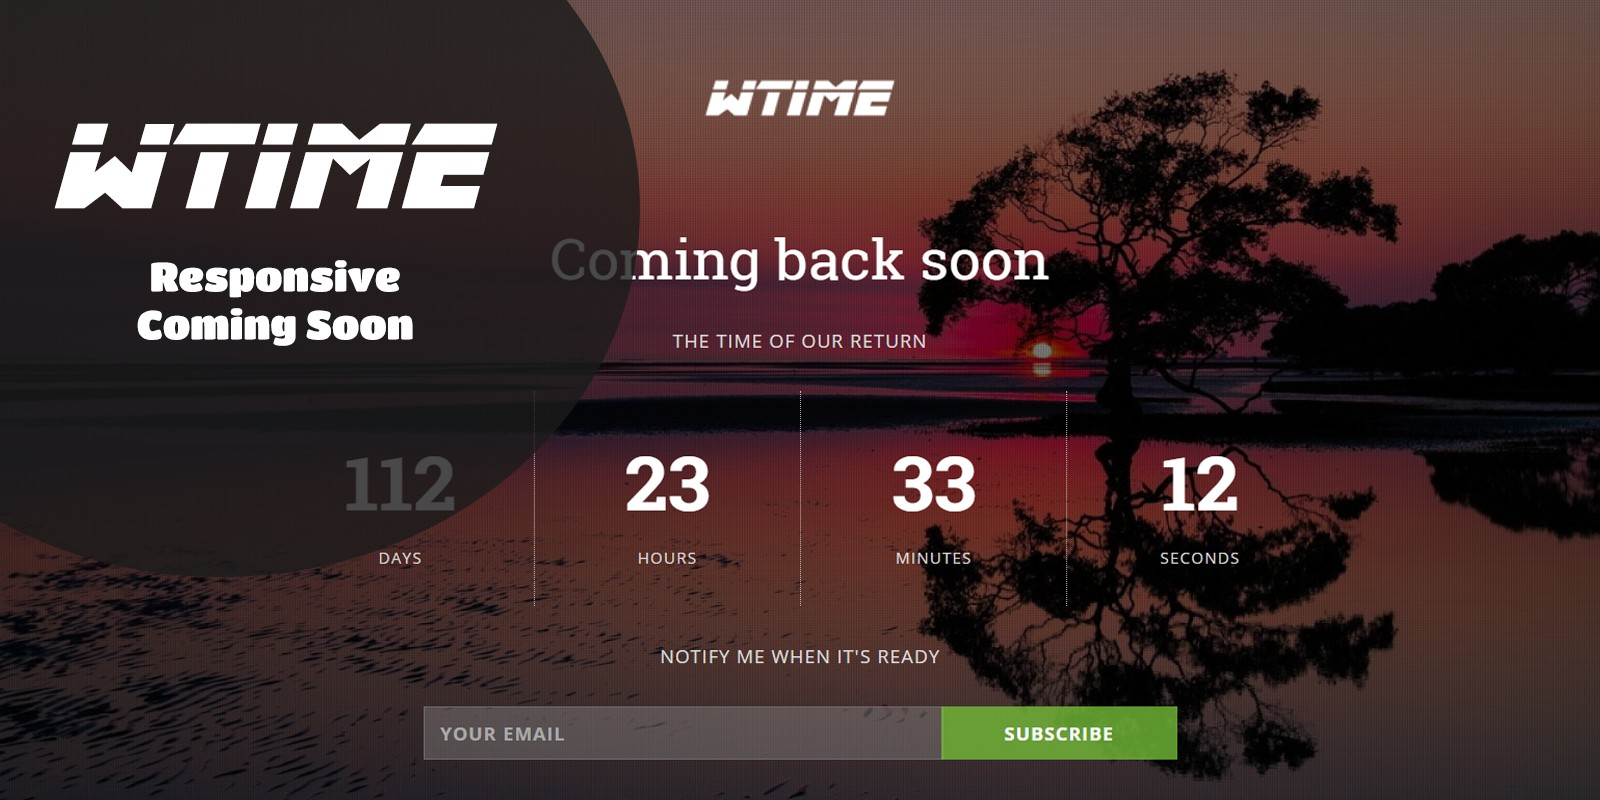 WTime - Responsive Coming Soon Template